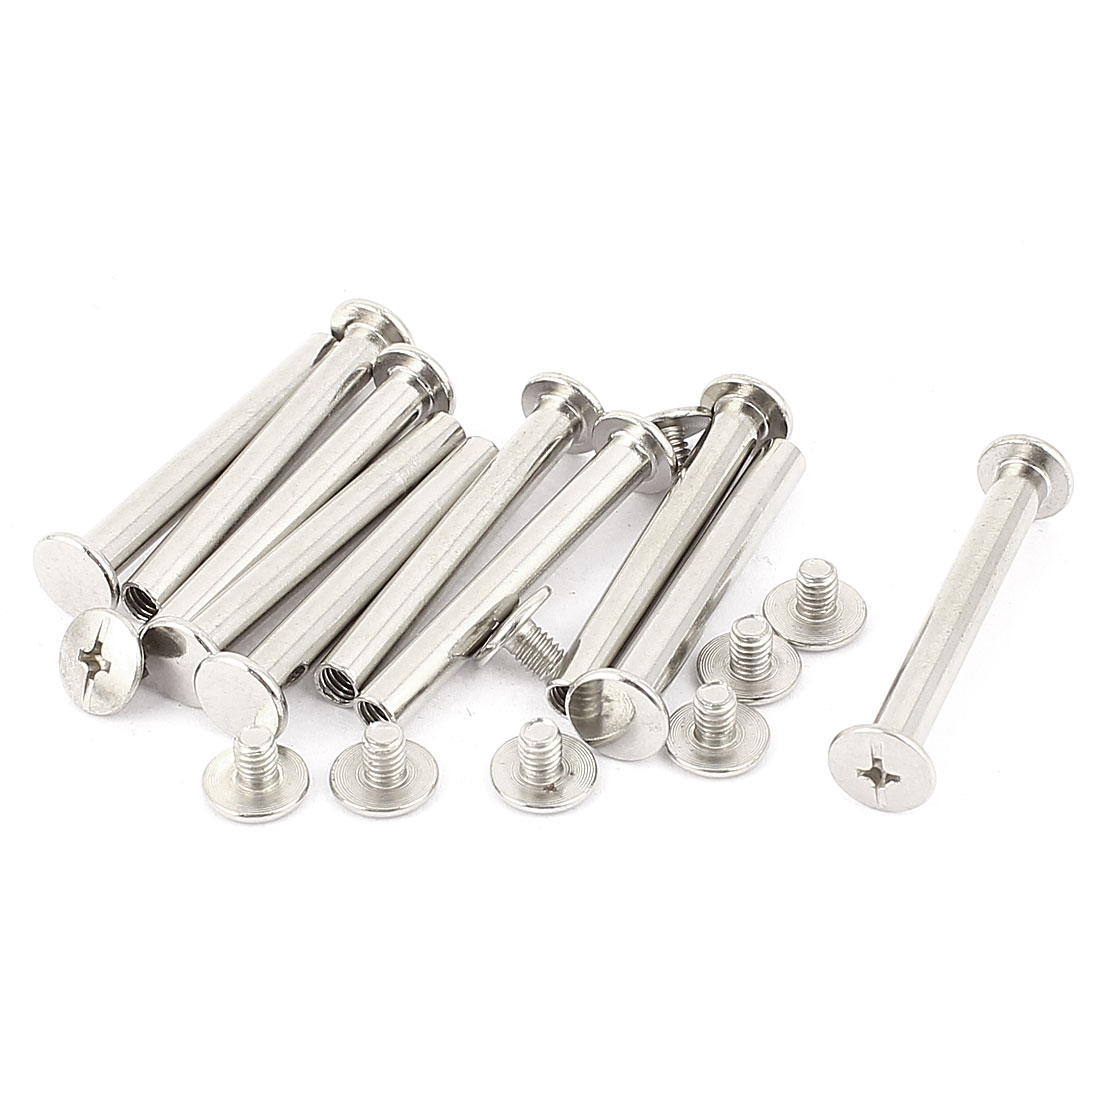 10Pcs M5x40mm Nickel Plated Binding Screw Post for Scrapbook Photo Albums